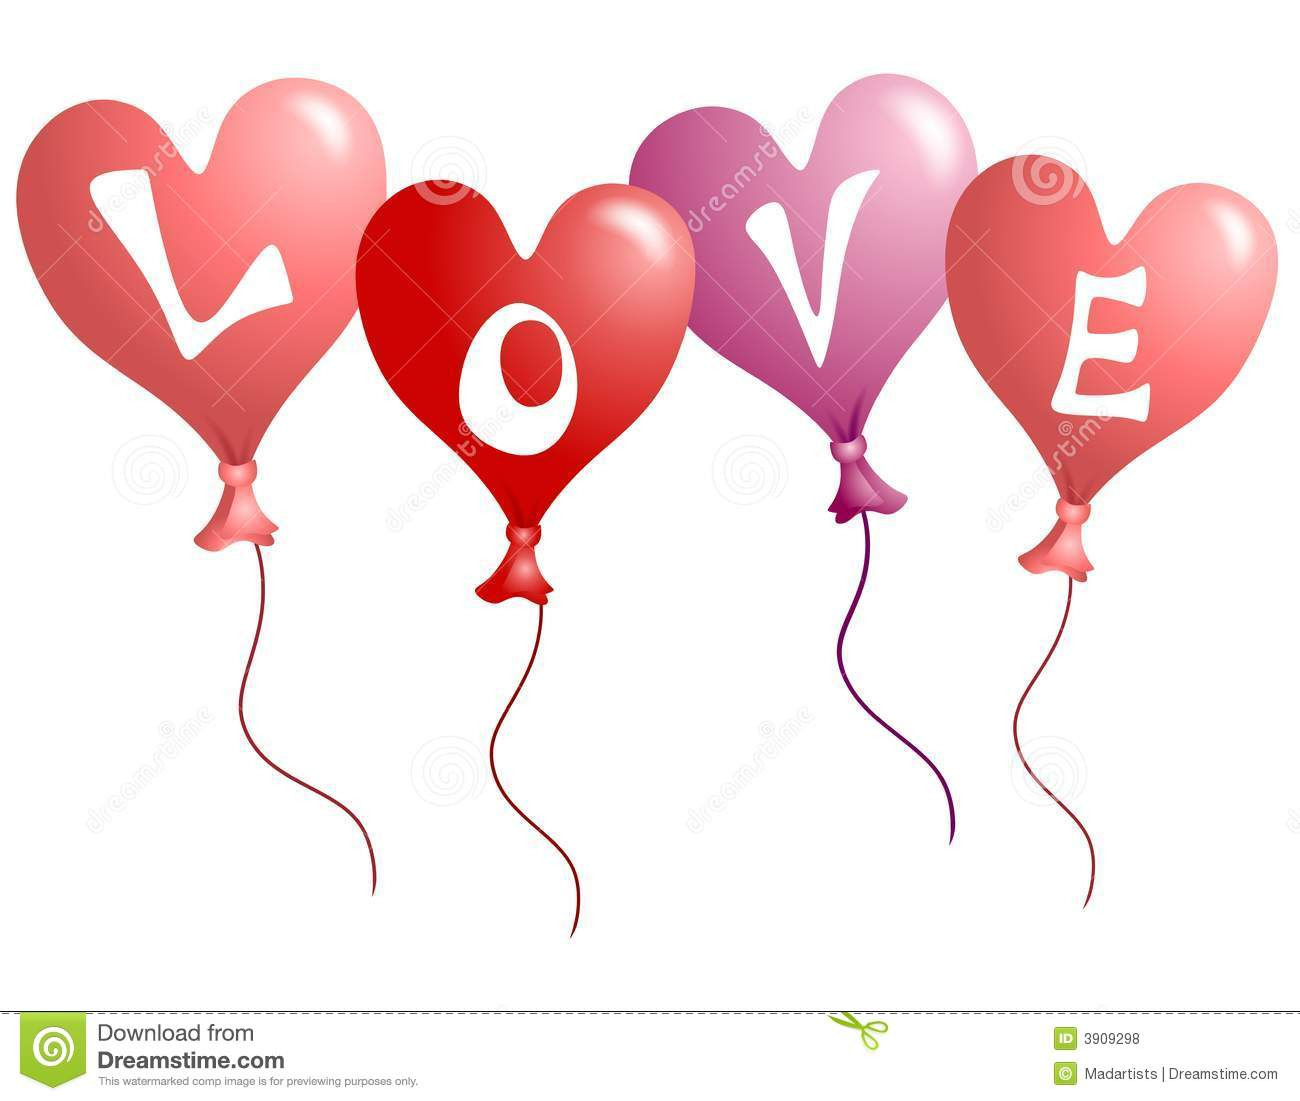 Valentine's Day Love Heart Shaped Balloons Royalty Free Stock